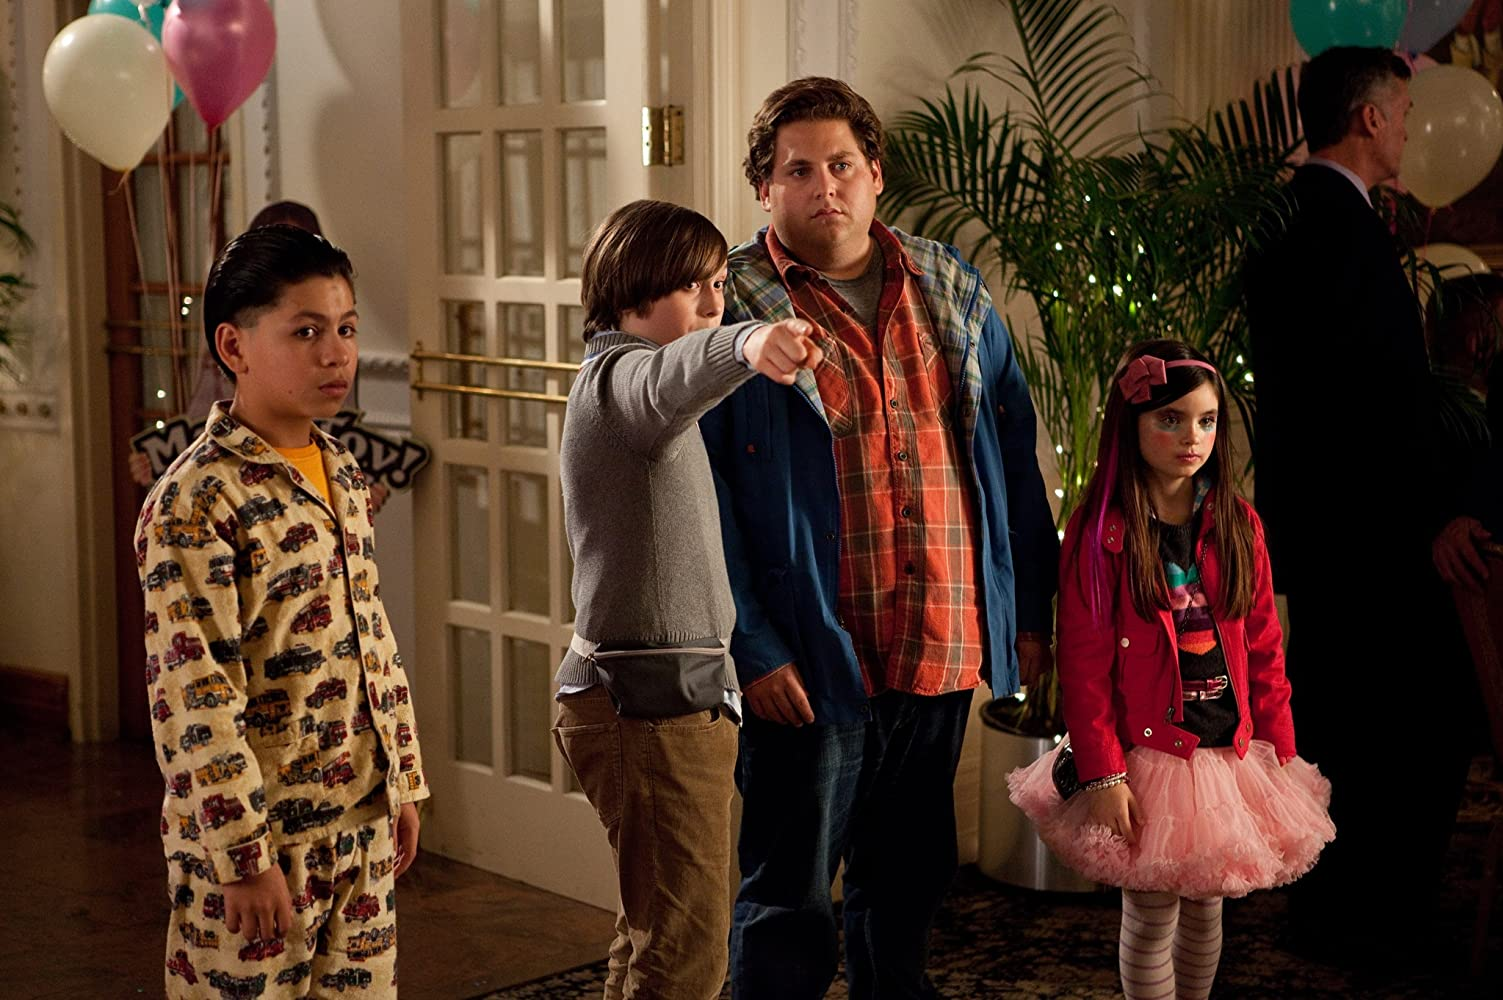 Jonah Hill, Max Records, Kevin Balmore, and Landry Bender in The Sitter (2011)